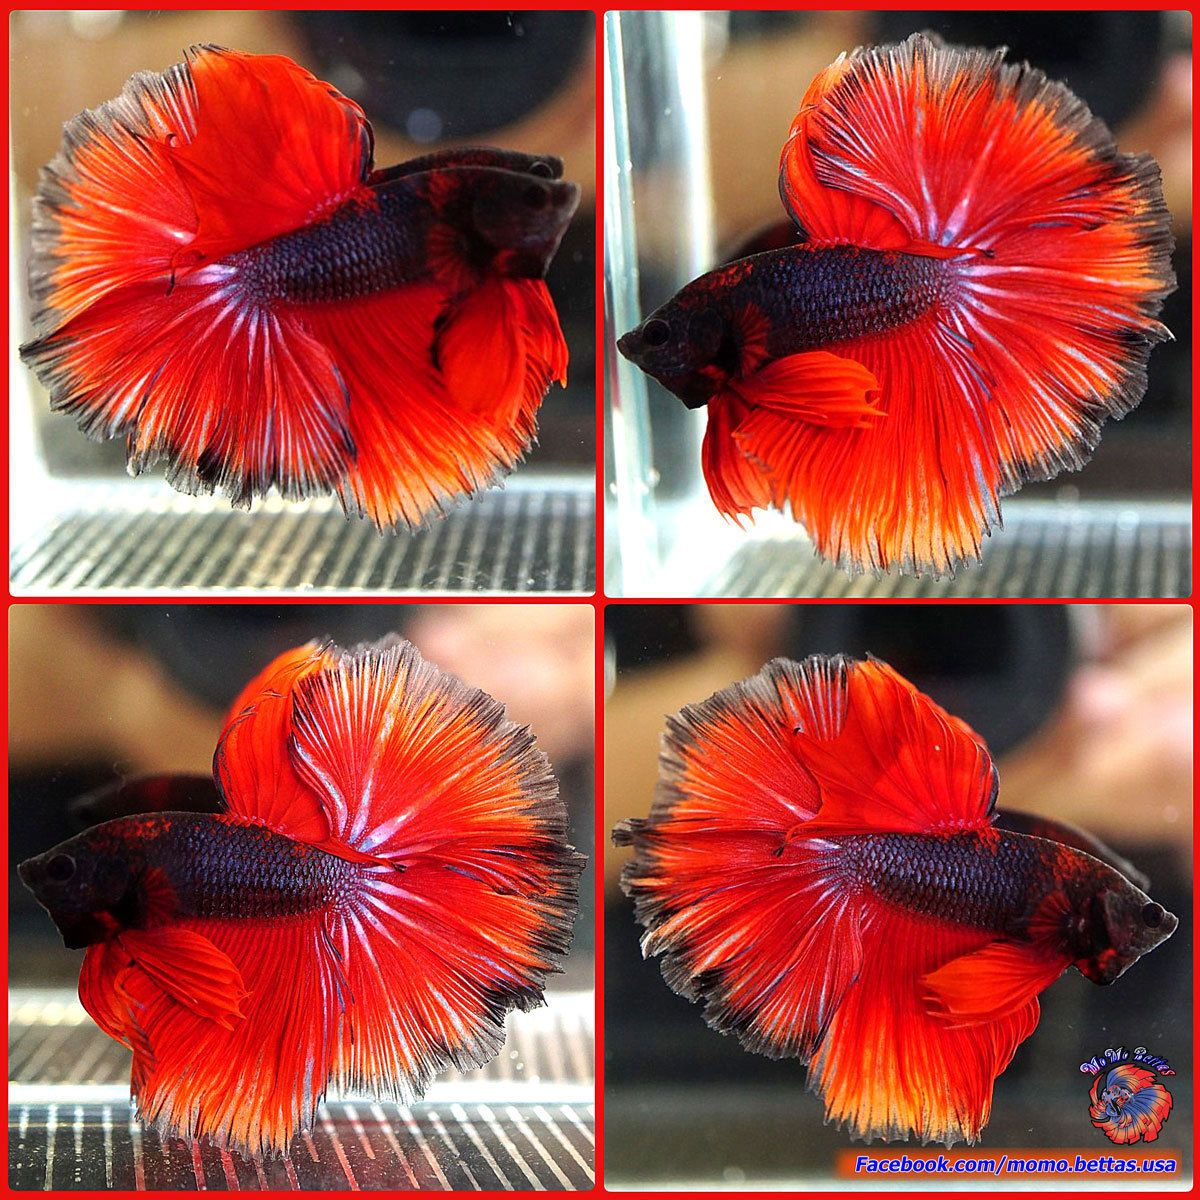 Live Betta Fish Male Red Devil Rosetail Over Halfmoon OHM #466 ...